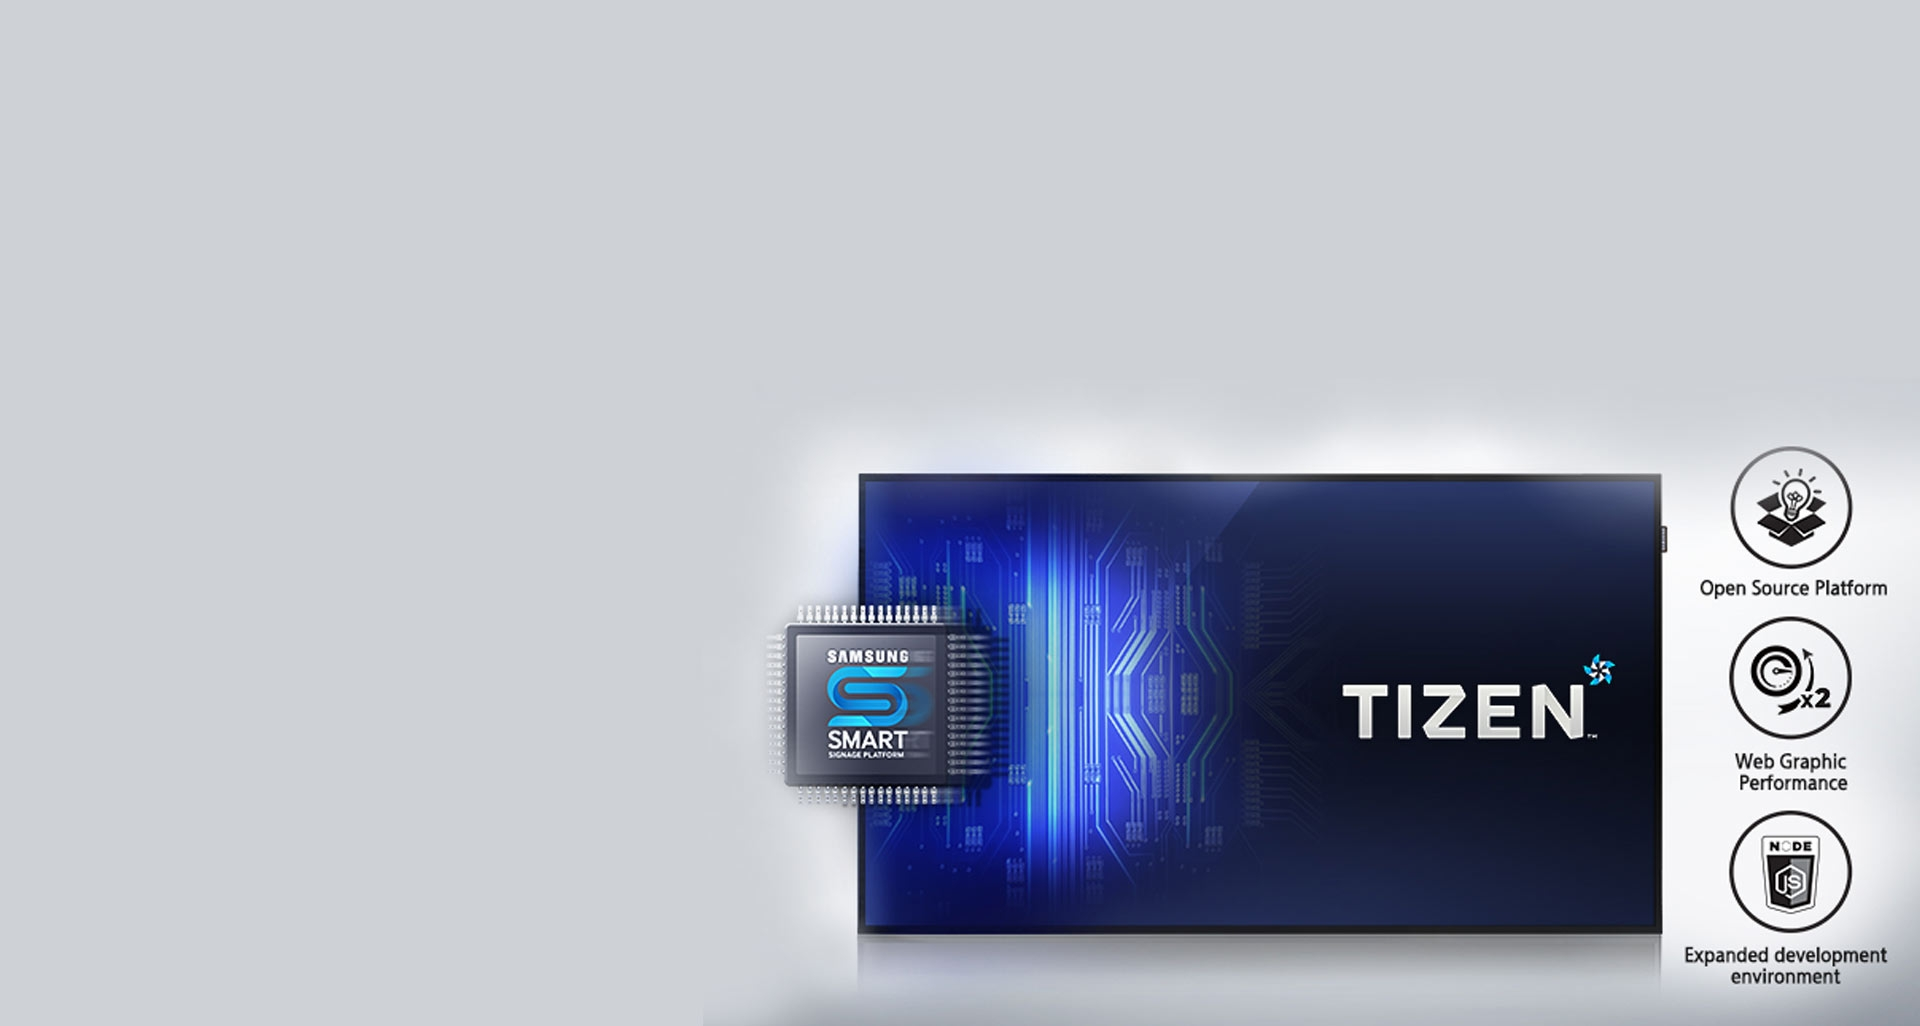 samsung 11 the all new embedded media player powered by tizen - نمایشگر اطلاع رسان سامسونگ 24/7 تایزن 55 اینچ Samsung Display 24/7 PM55H